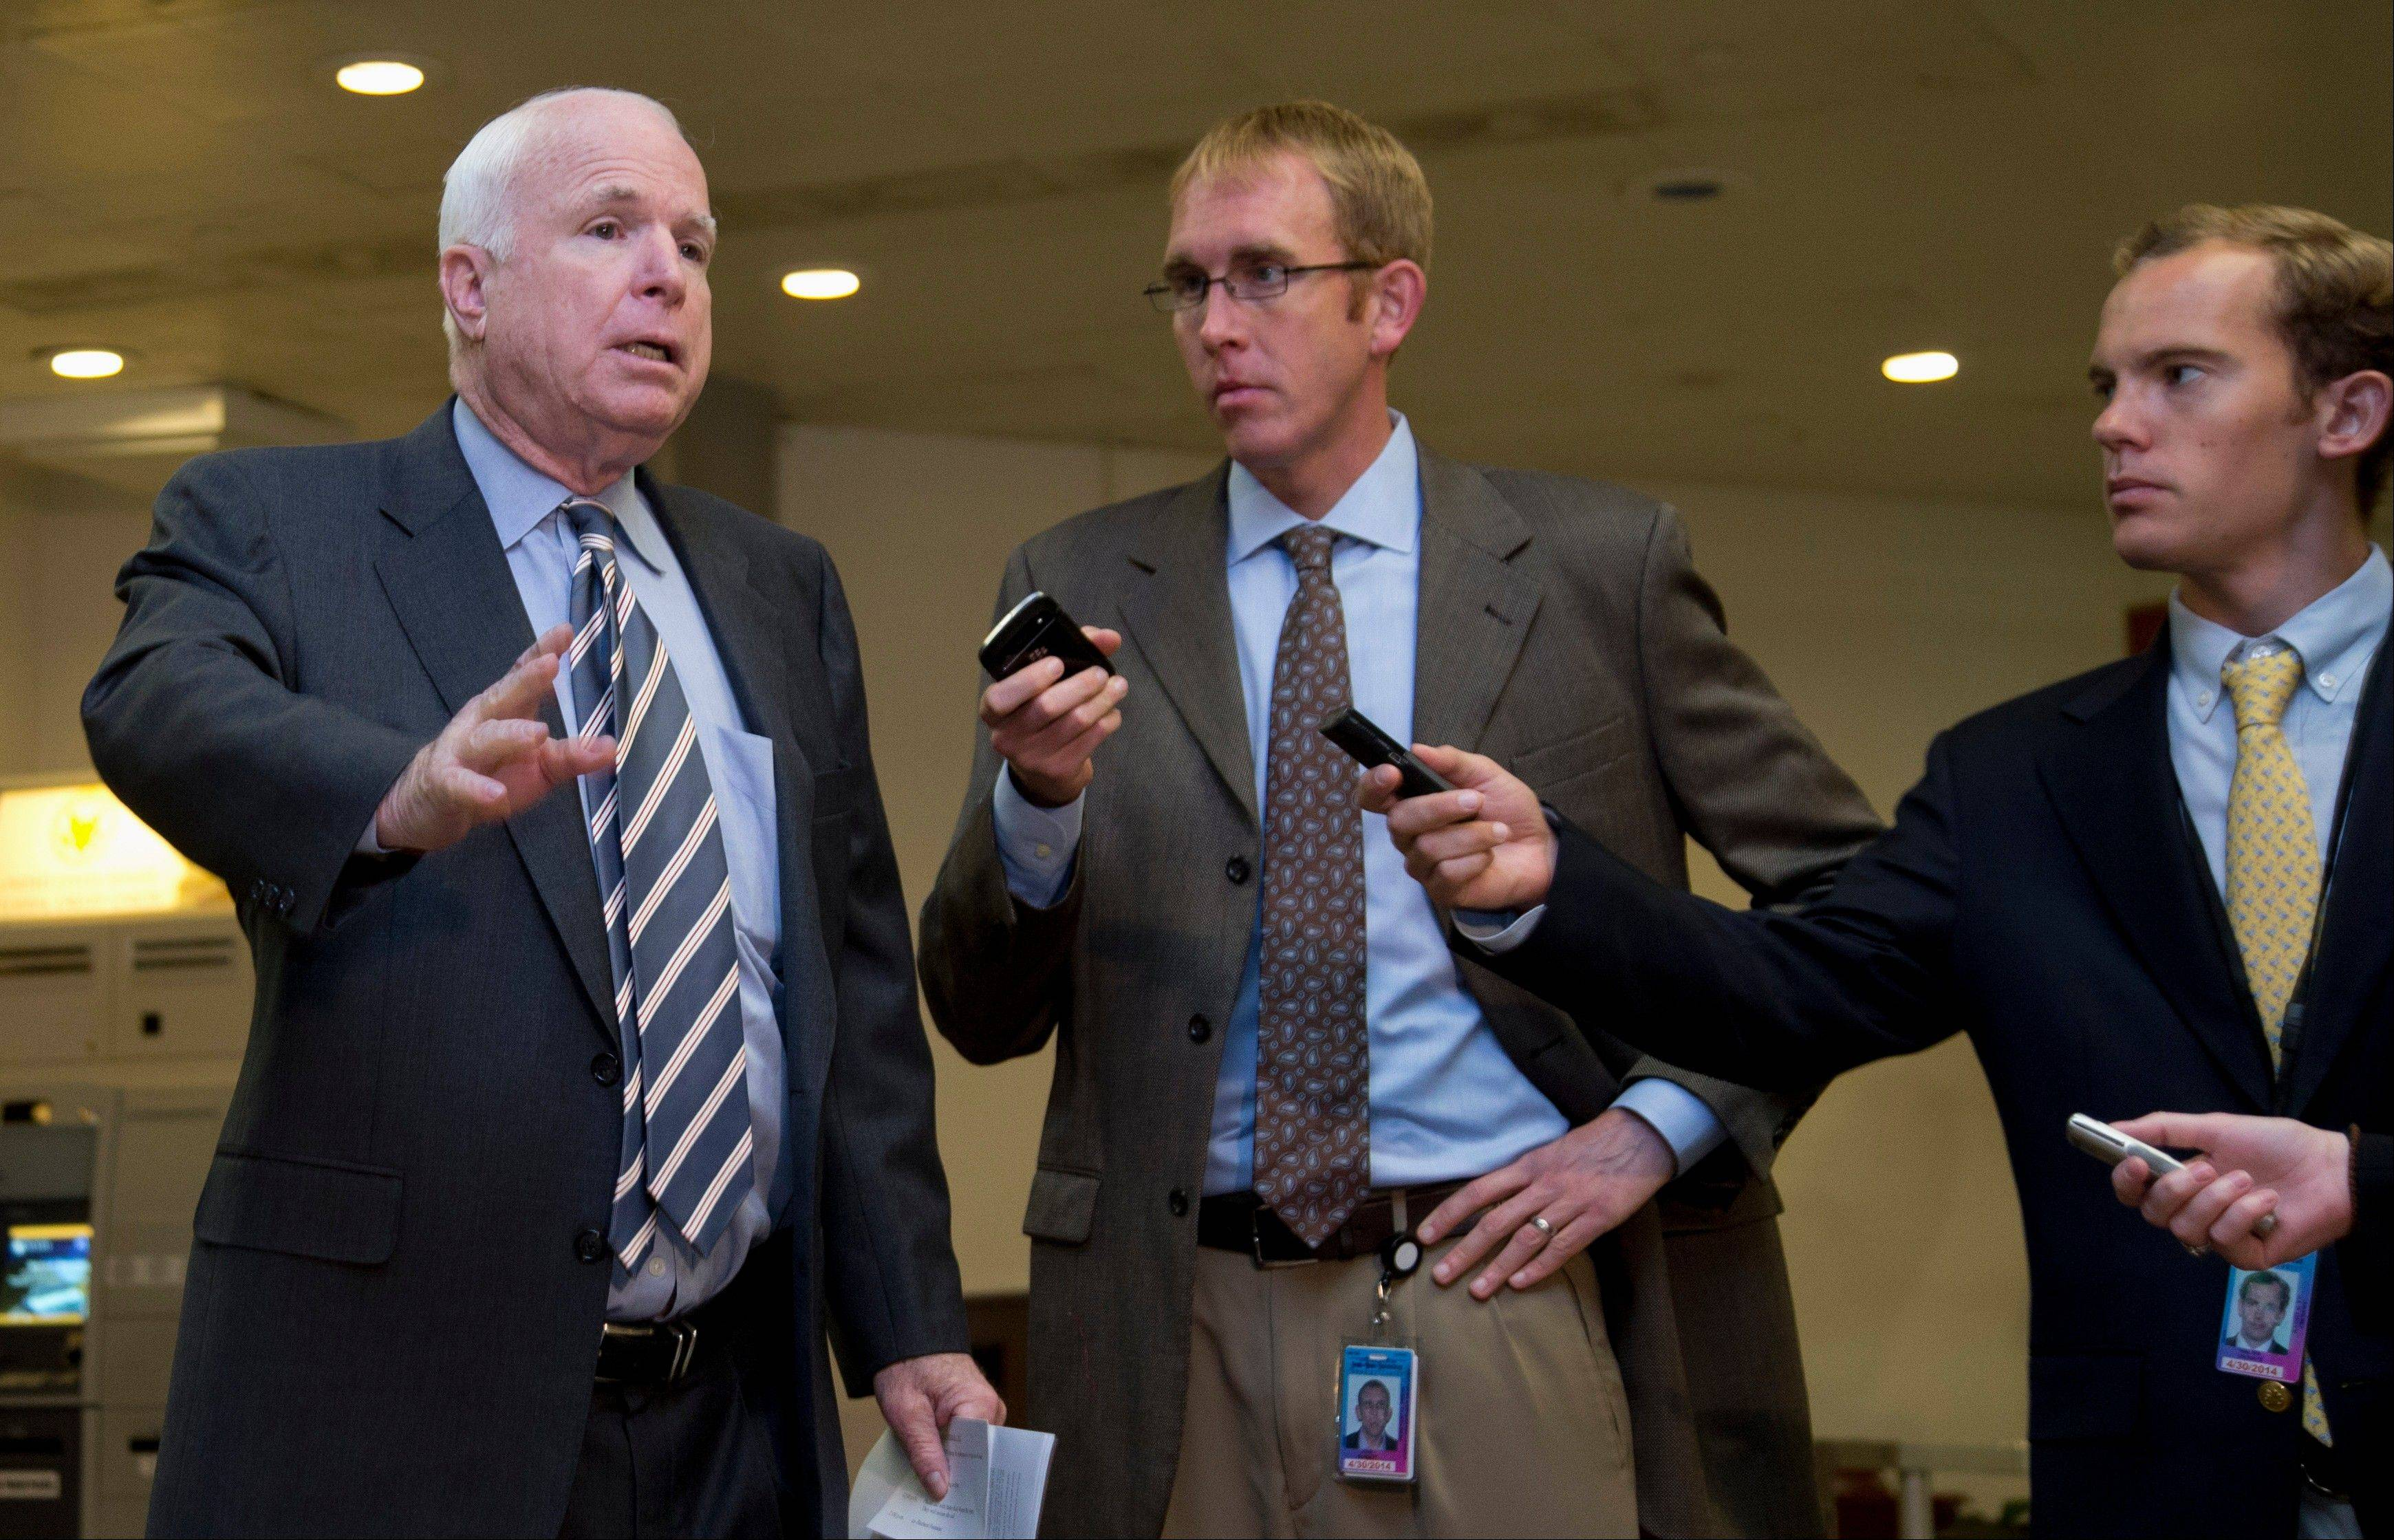 Foreign Relations Committee member Sen. John McCain, R-Ariz., talks with reporters on Capitol Hill in Washington, Wednesday, Sept. 4, 2013, as he walks to a closed-door committee meeting on the authorization of the use of force in Syria.